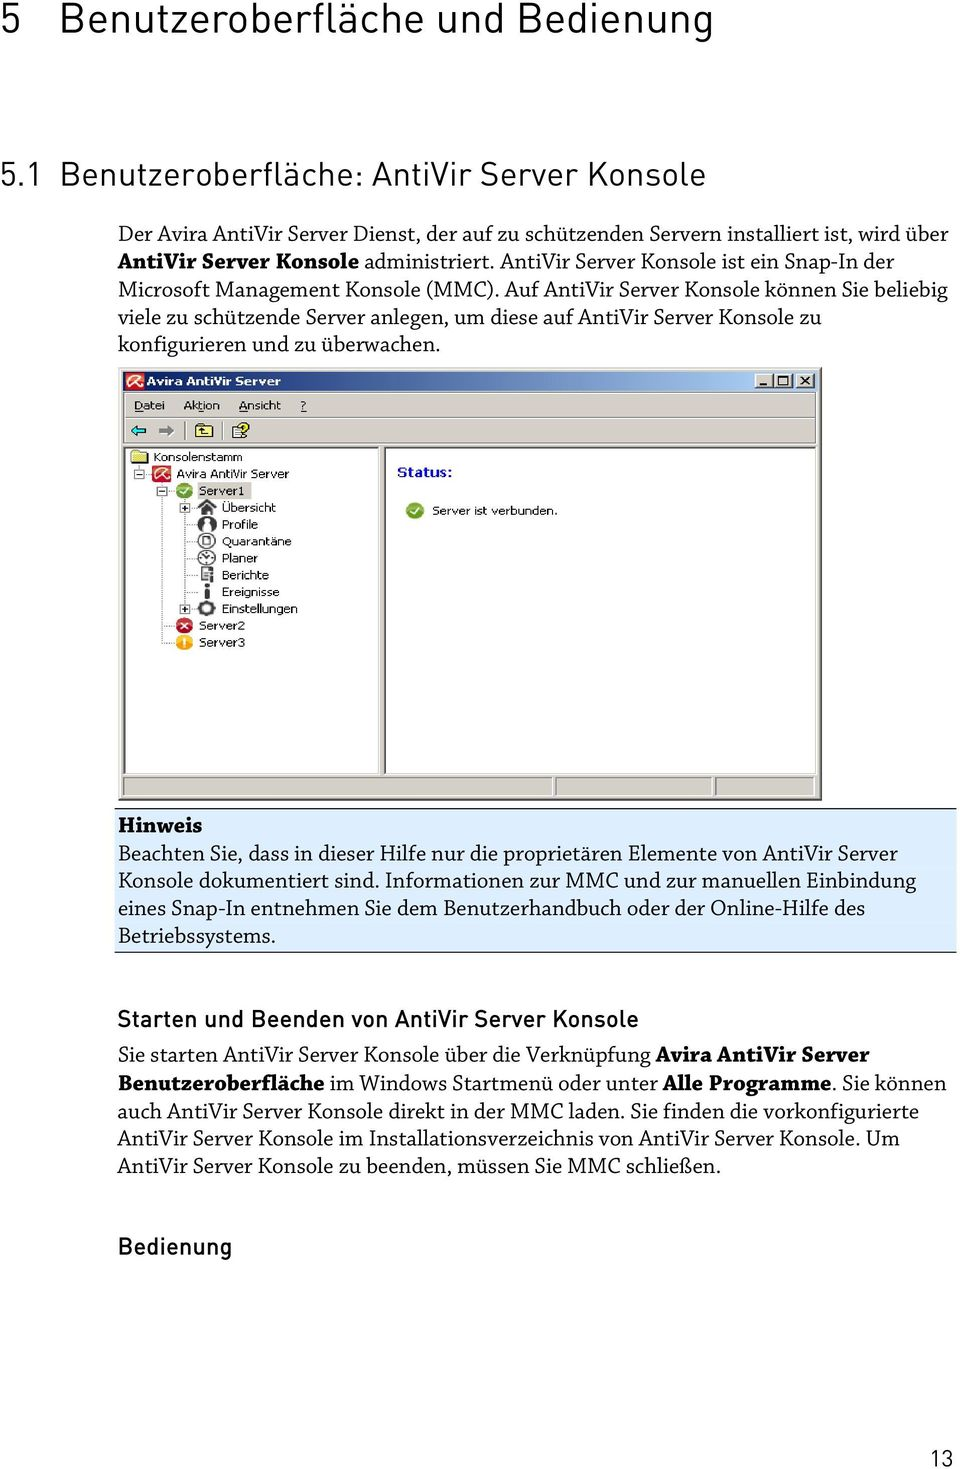 AntiVir Server Konsole ist ein Snap-In der Microsoft Management Konsole (MMC).